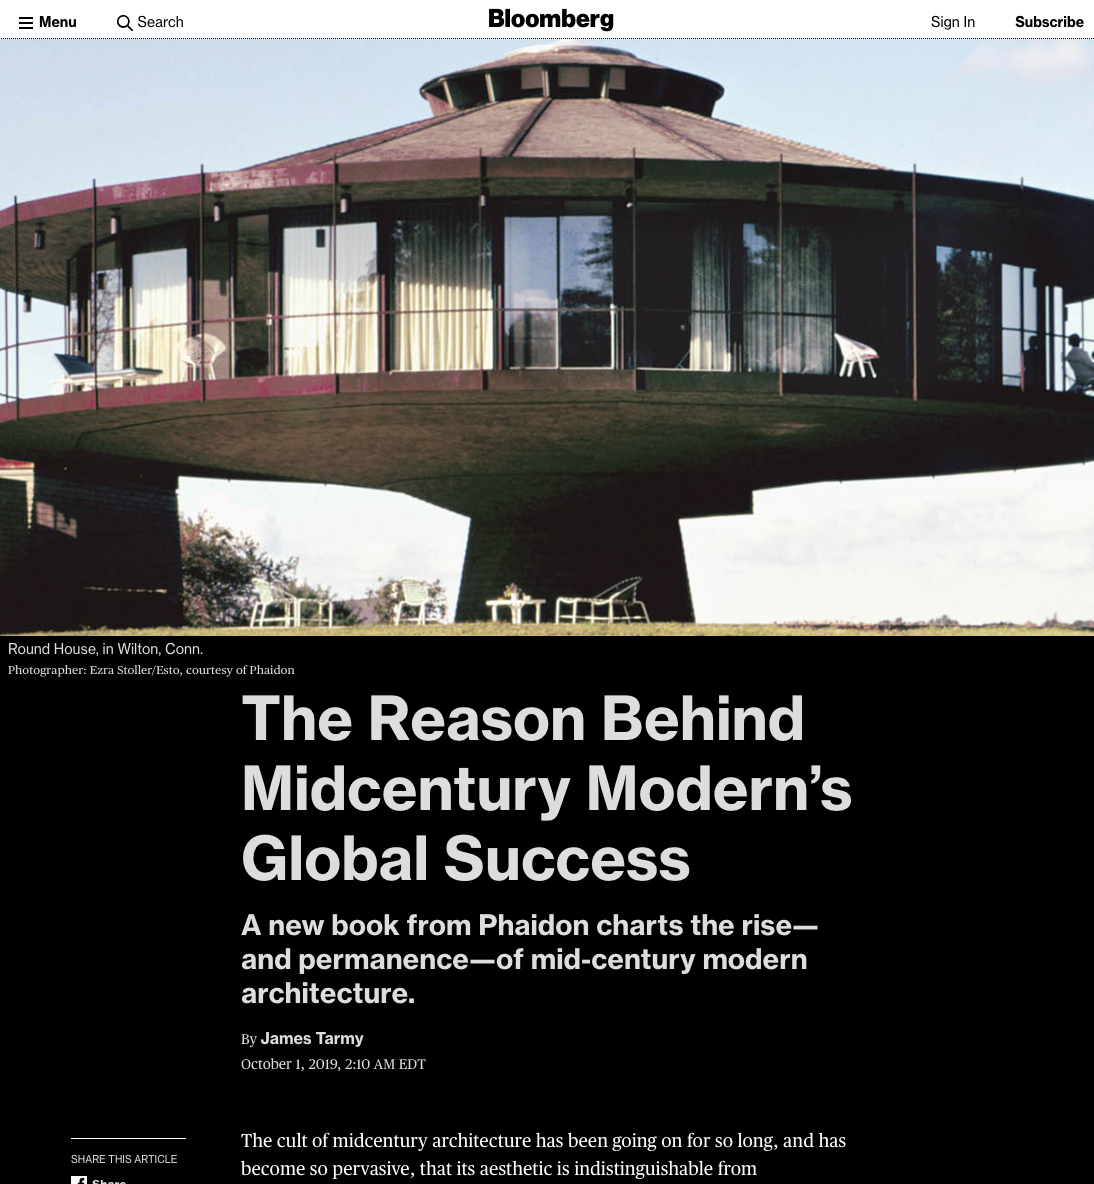 The Reason Behind Midcentury Modern's Global Success - Bloomberg